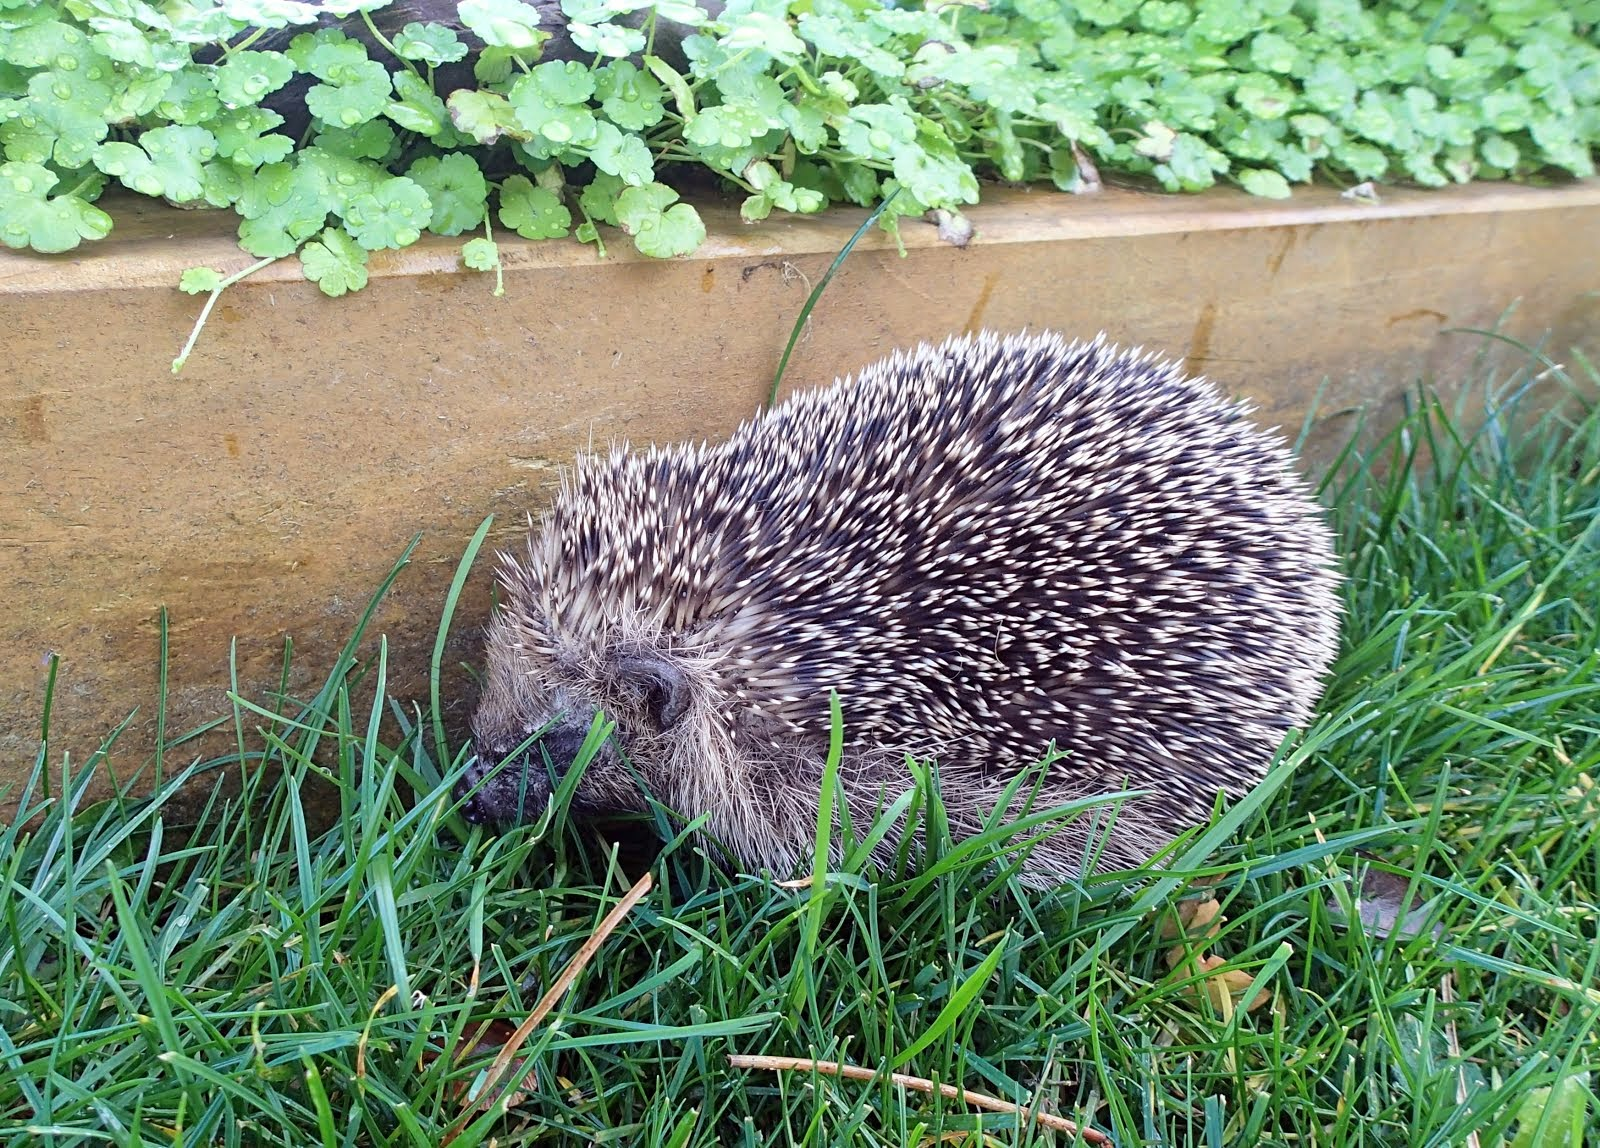 Baby hedgehog, powering around the yard today. It's moving into 'no hedgehog here' position.